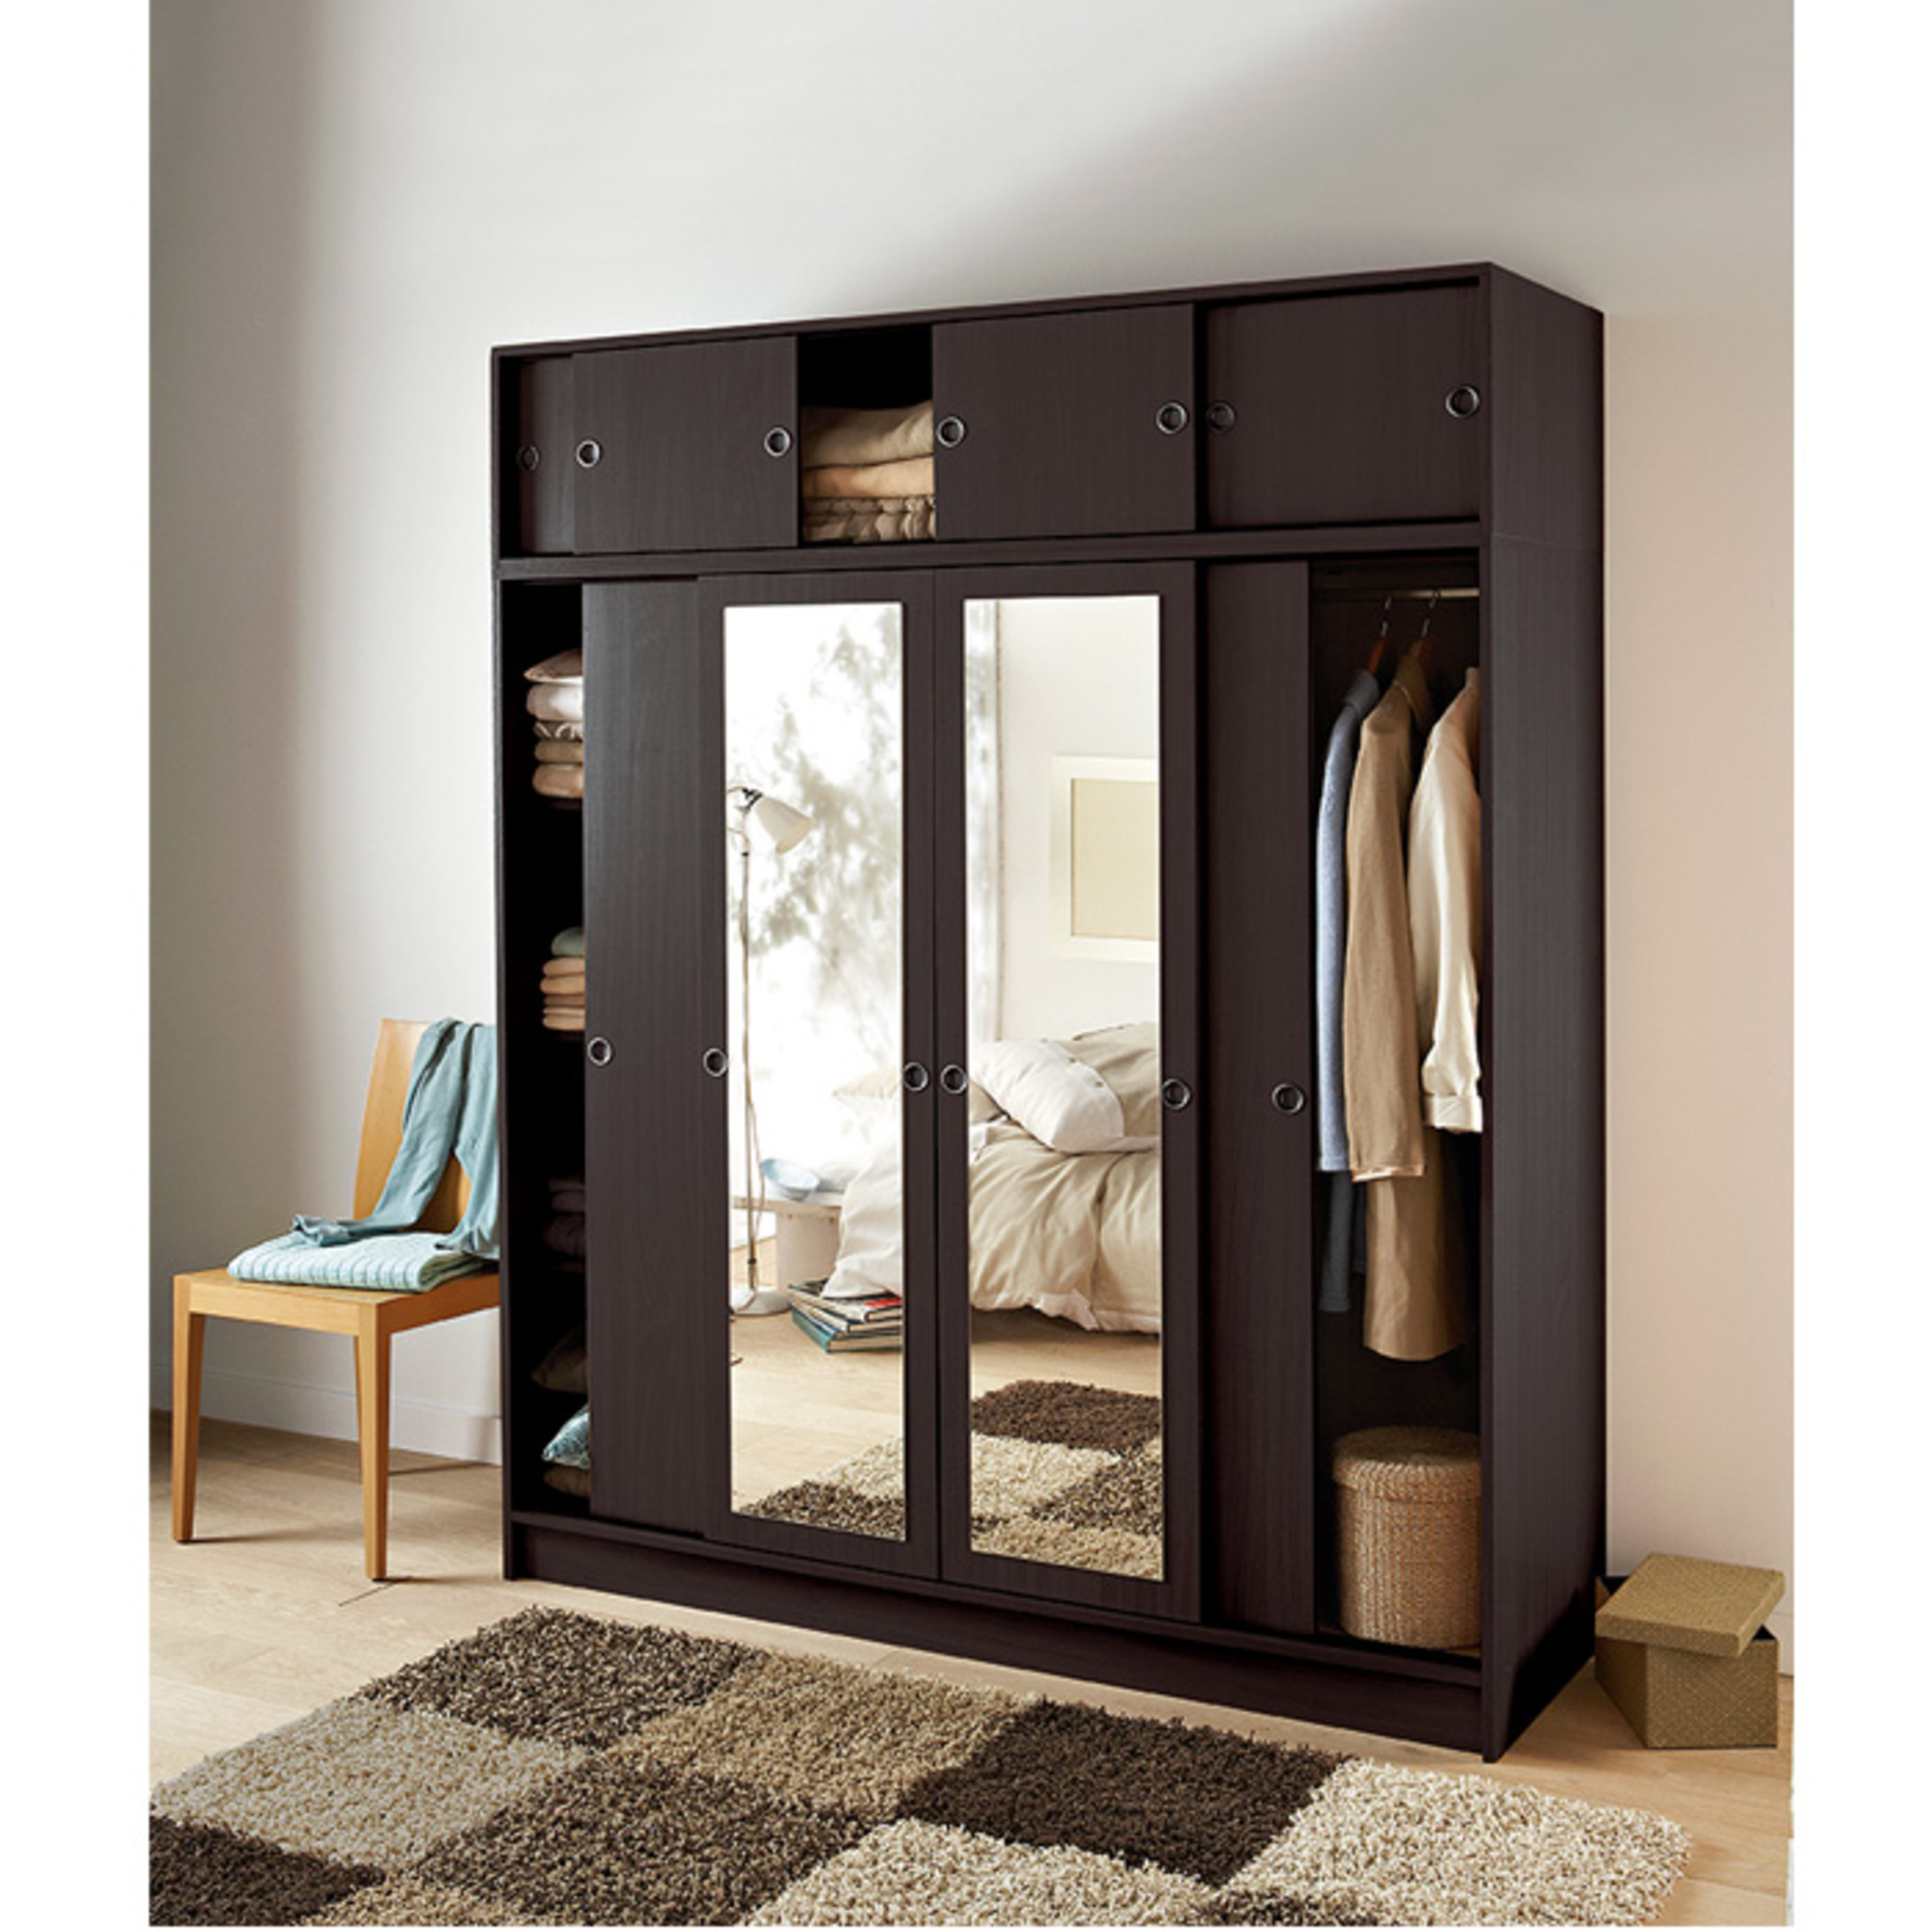 meuble porte coulissante ikea amazing armoires de cuisine garceau u avignon u salon photo but. Black Bedroom Furniture Sets. Home Design Ideas